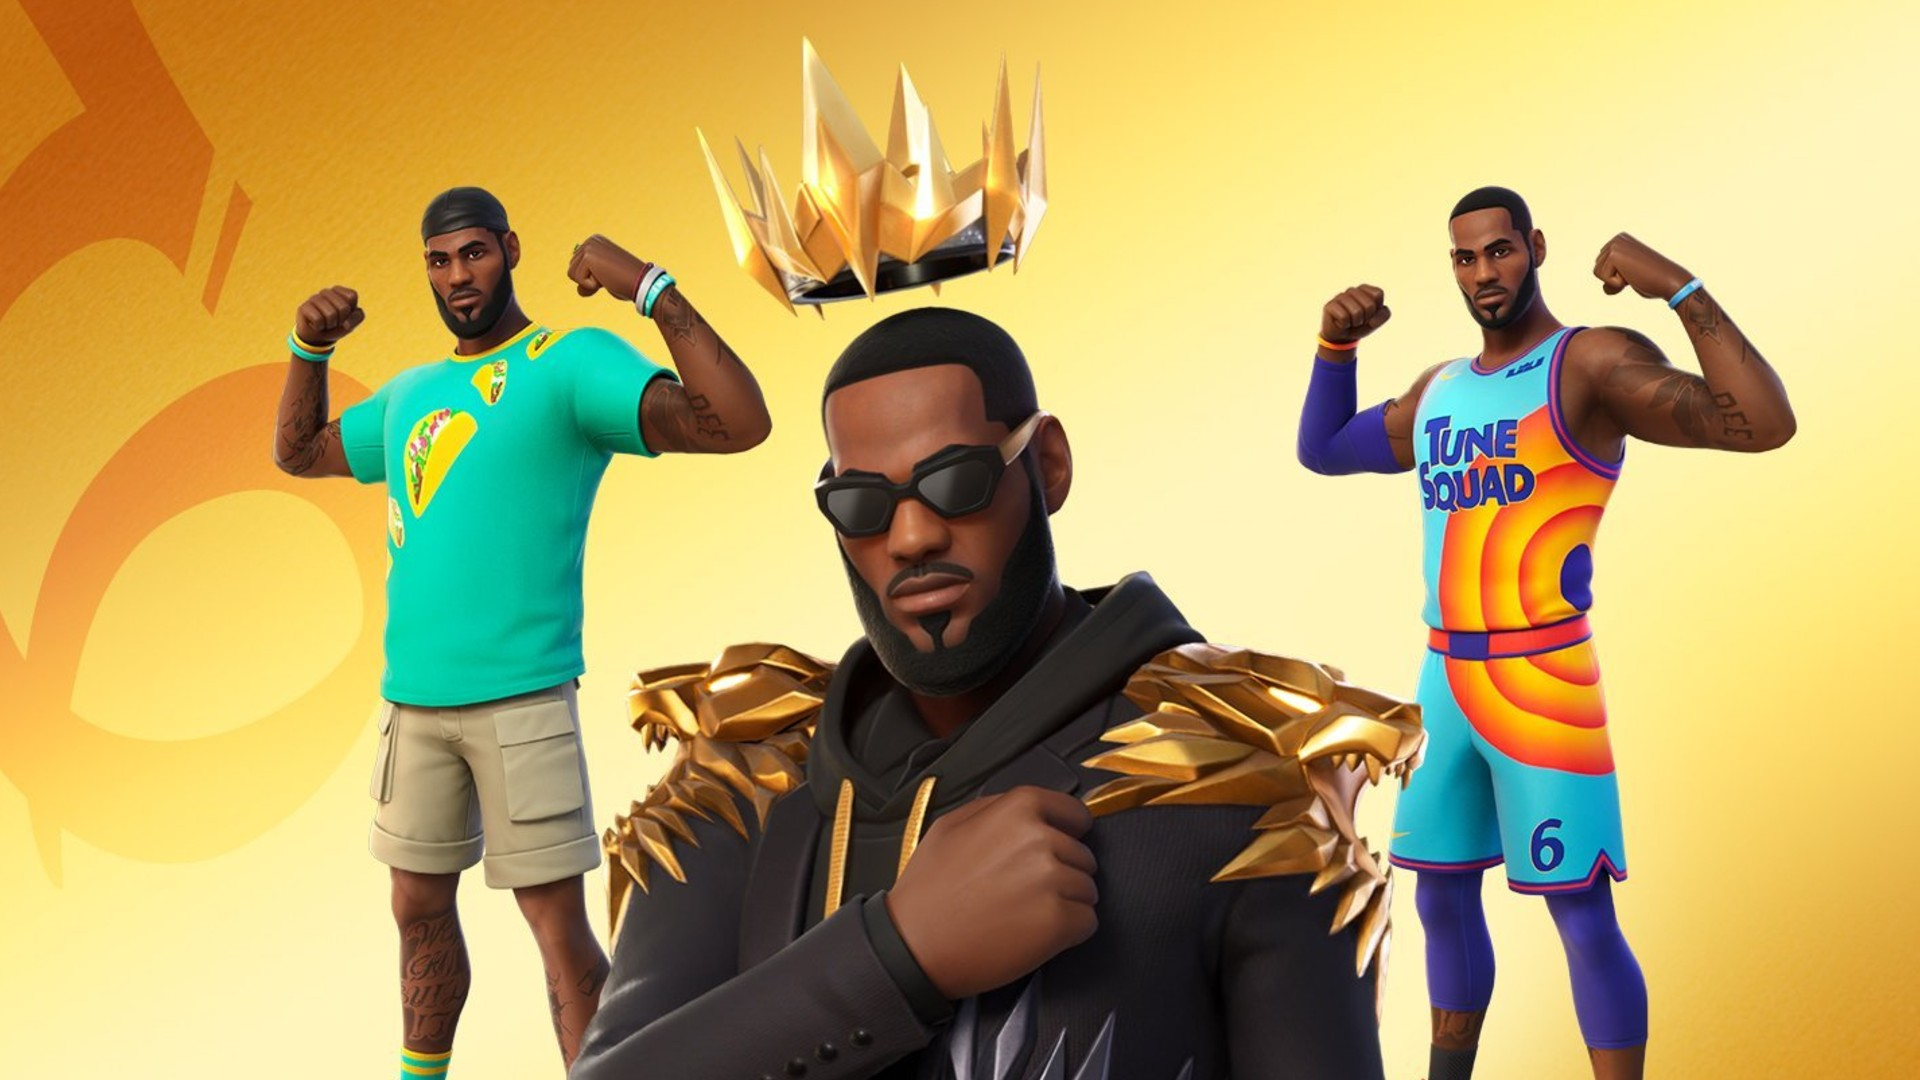 LeBron James is officially in Fortnite